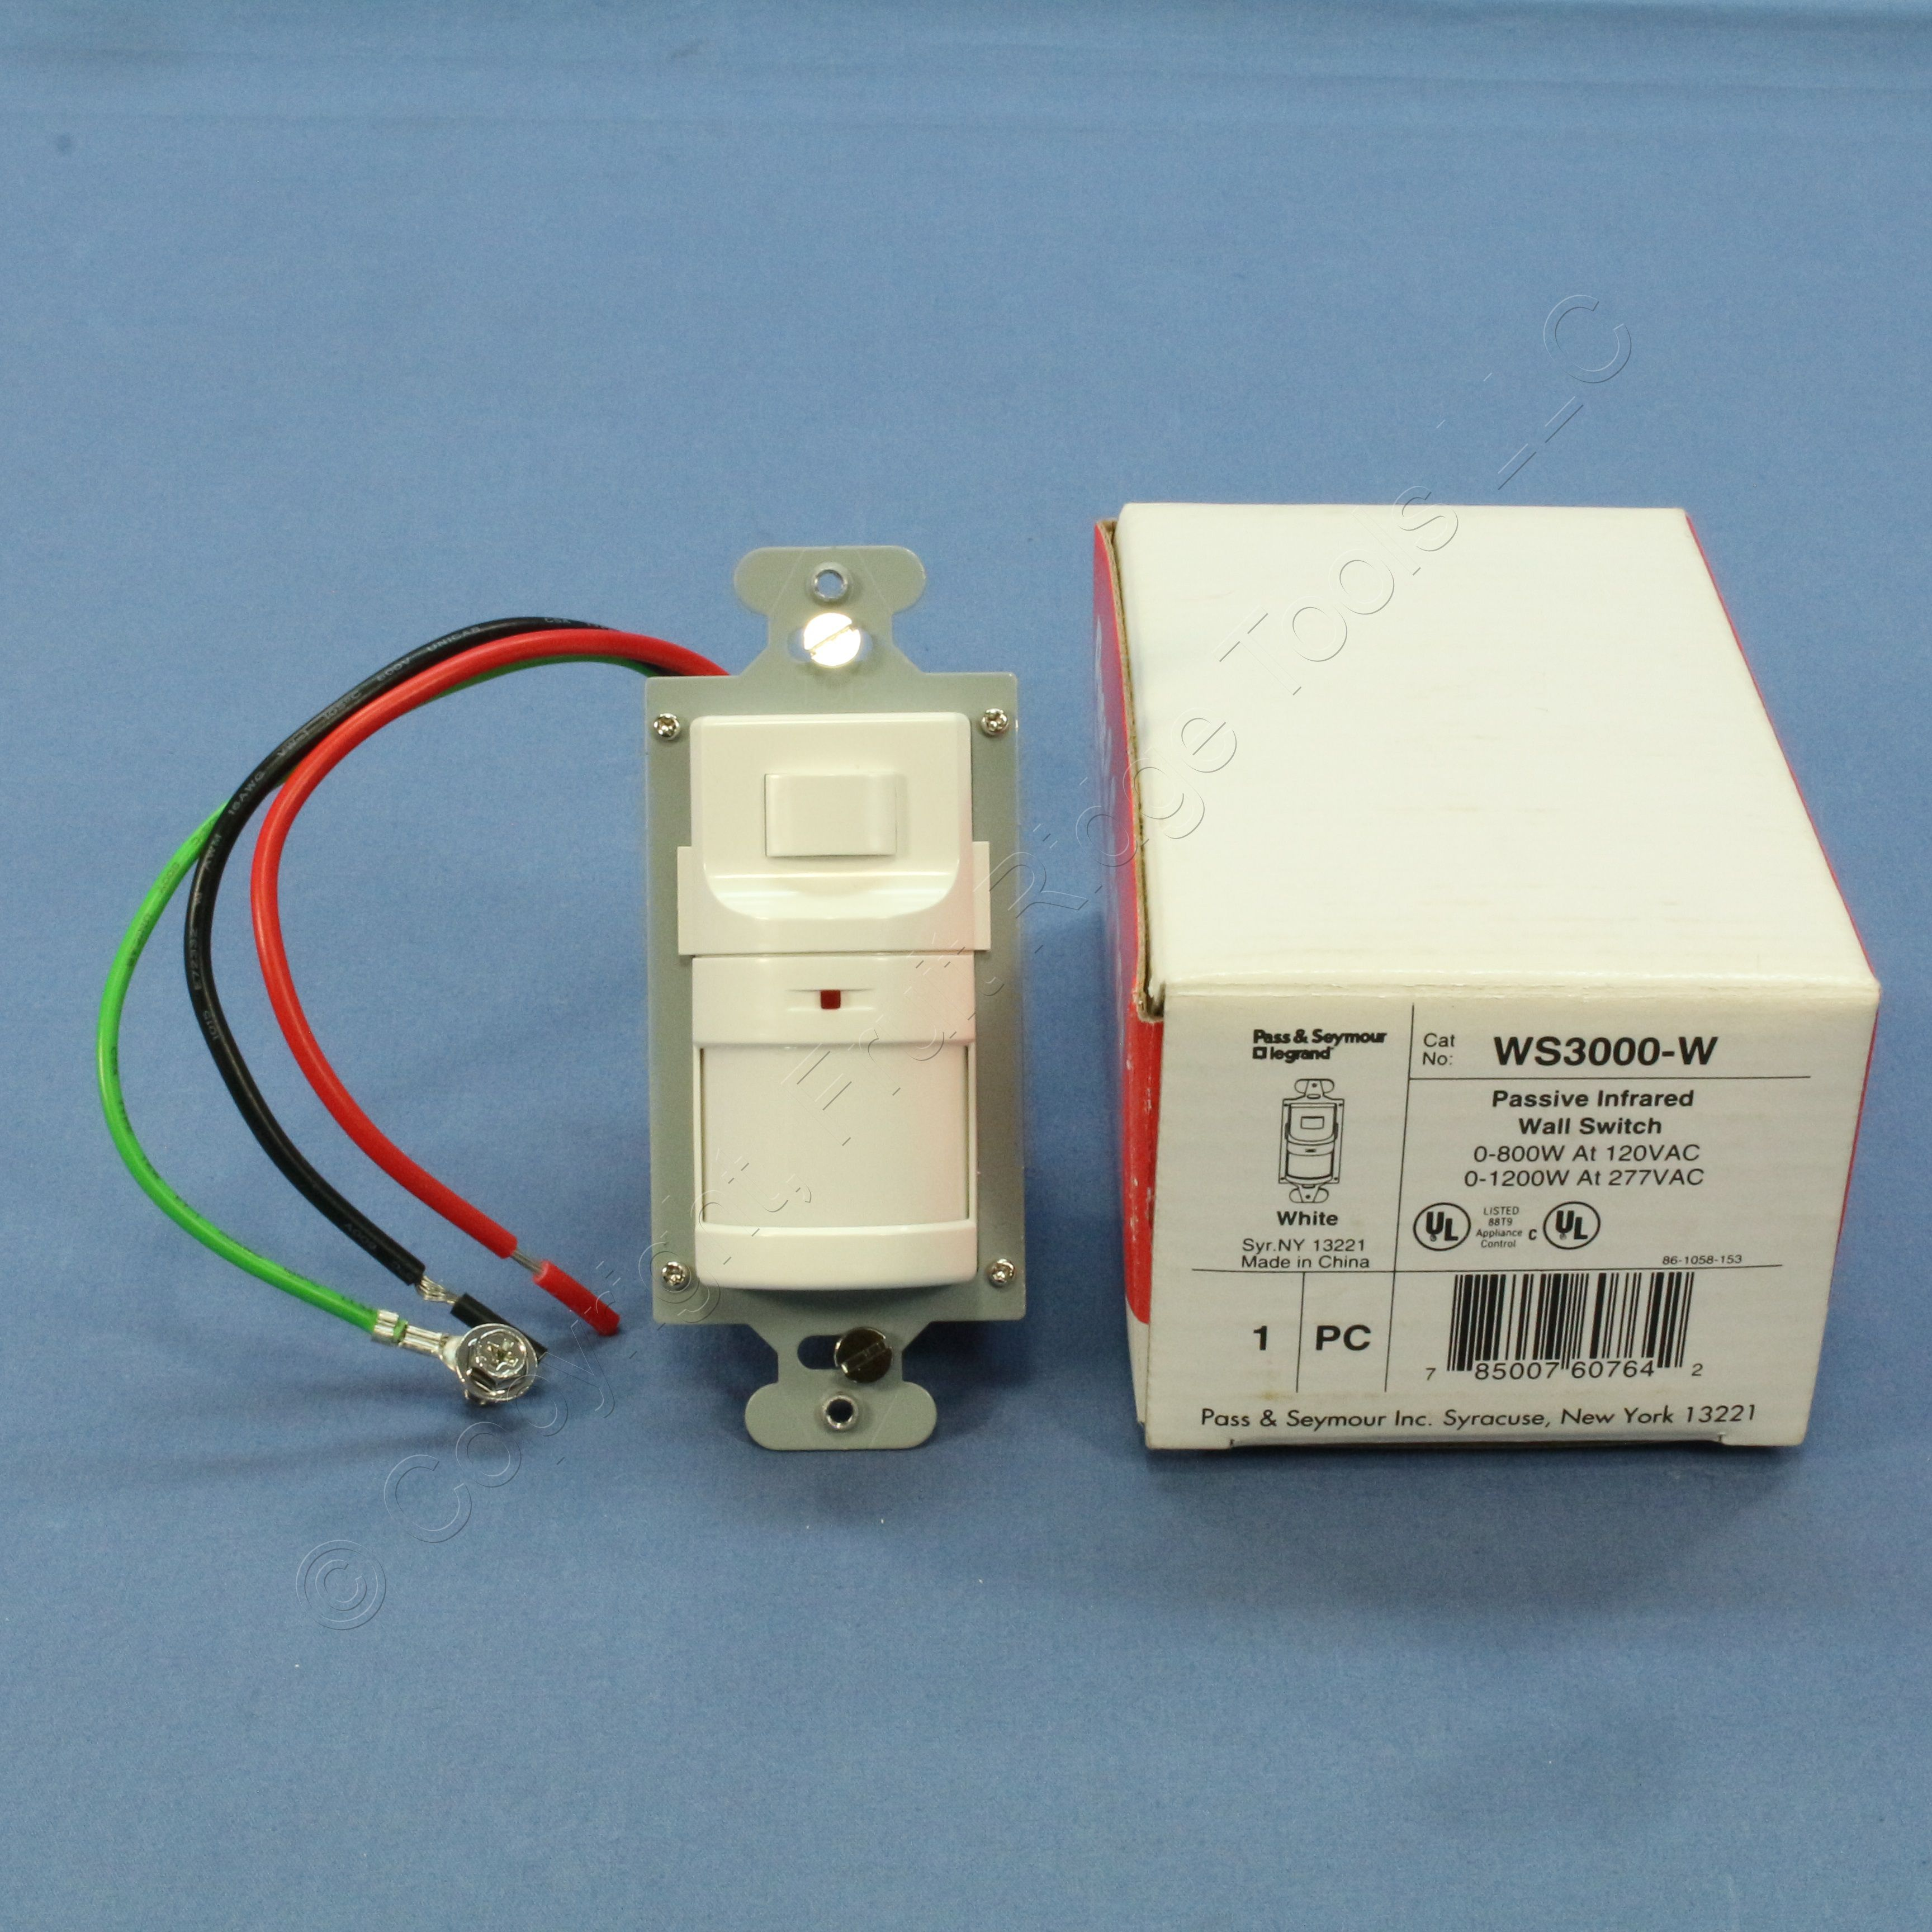 Ps white passive infrared wall switch occupancy sensor 120v277v ps white passive infrared wall switch occupancy sensor 120v277v 800w ws3000 w sciox Image collections